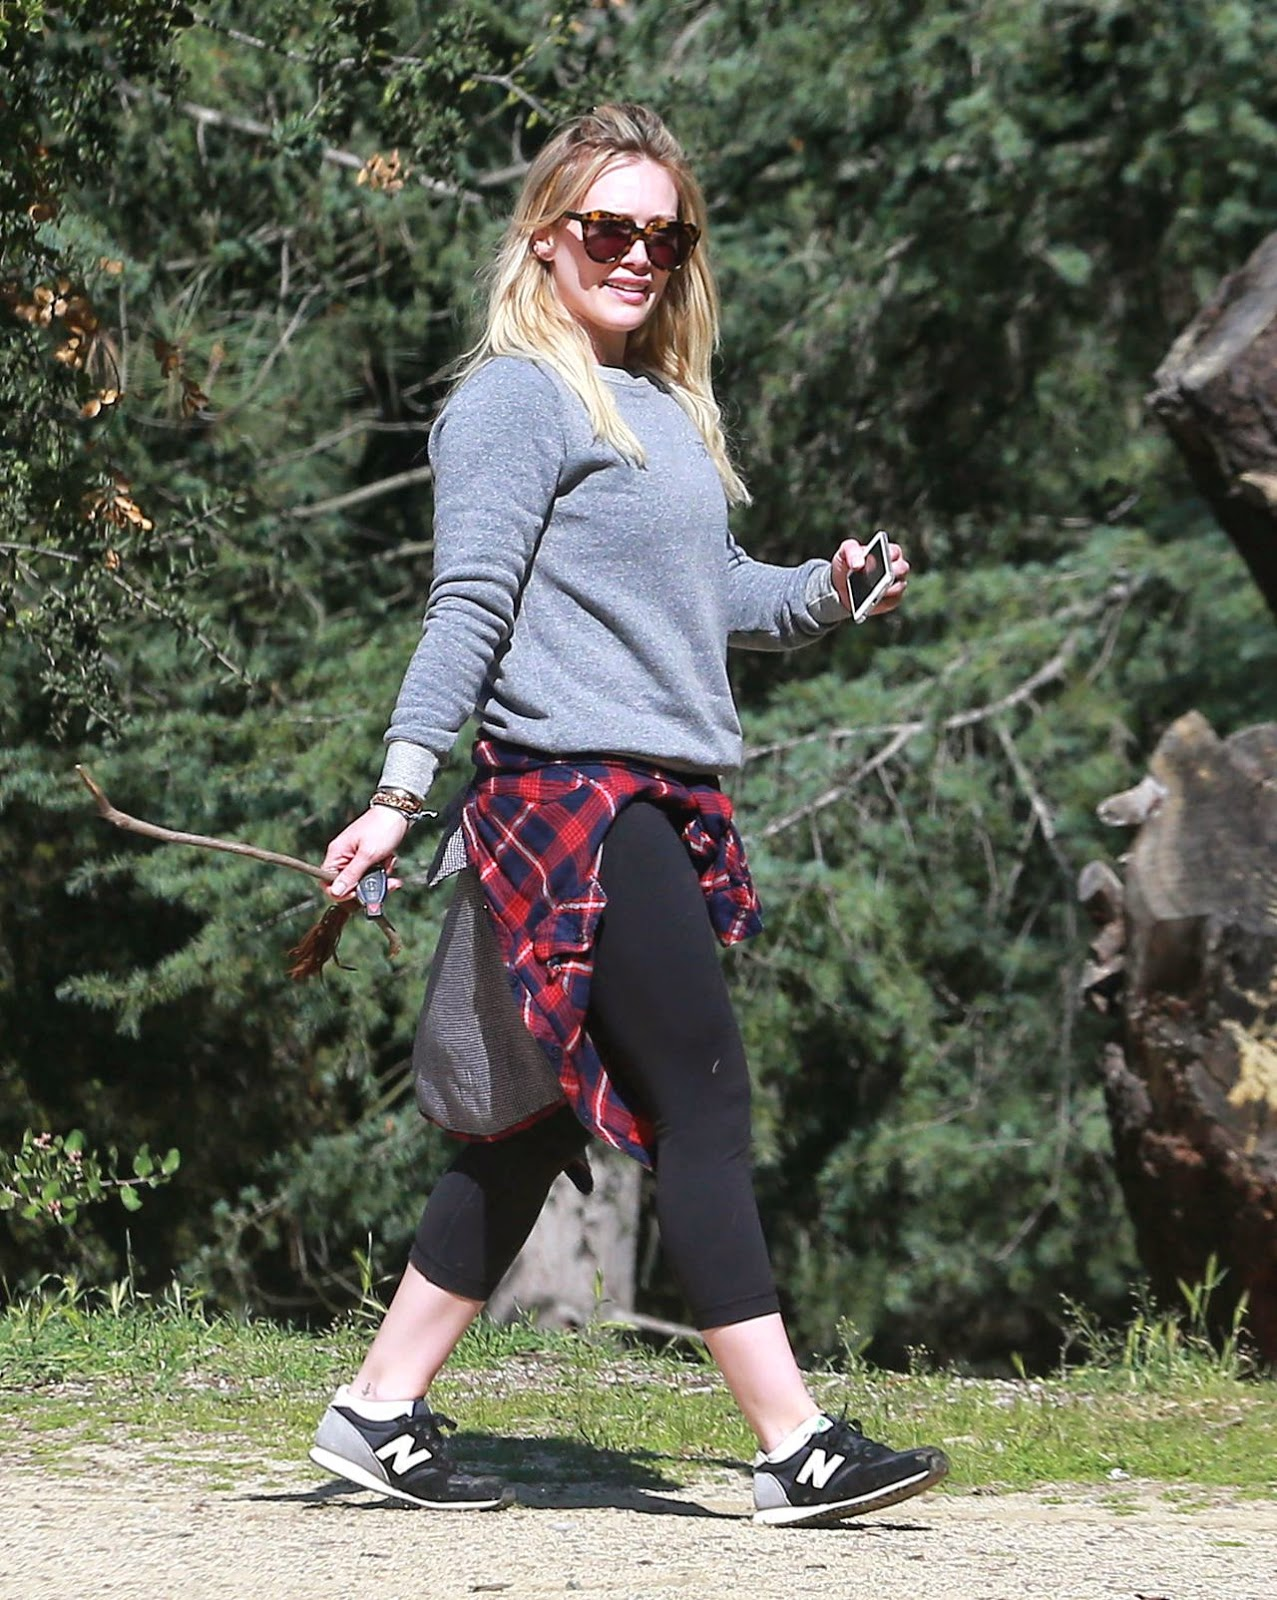 Singer, Actress @ Hilary Duff - TreePeople Park In Beverly Hills